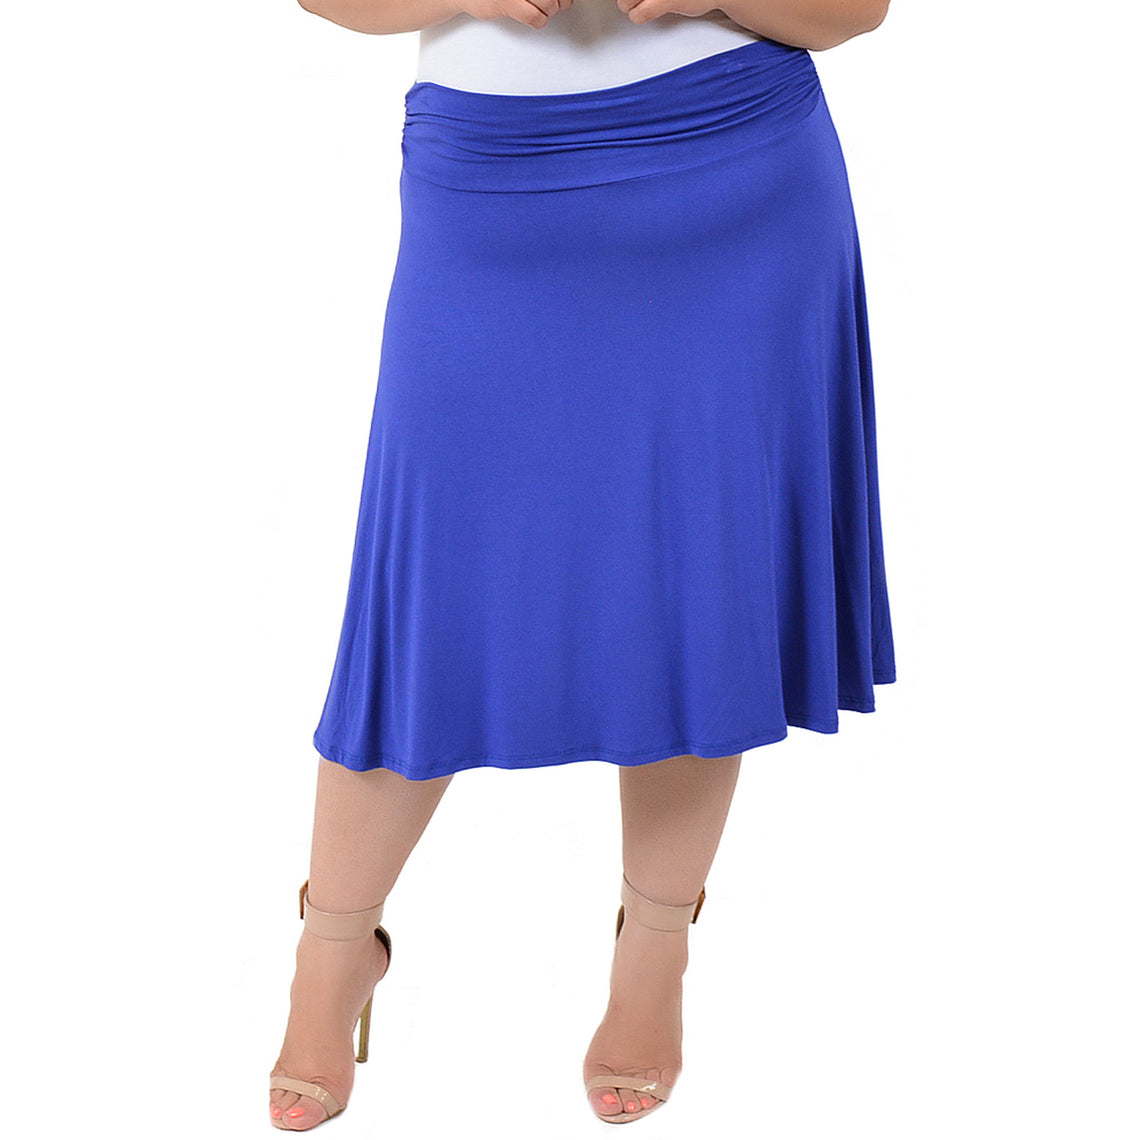 0cae22a62c Stretch is Comfort Women's Plus Size Knee Length Flowy Skirt – Stretch Is  Comfort